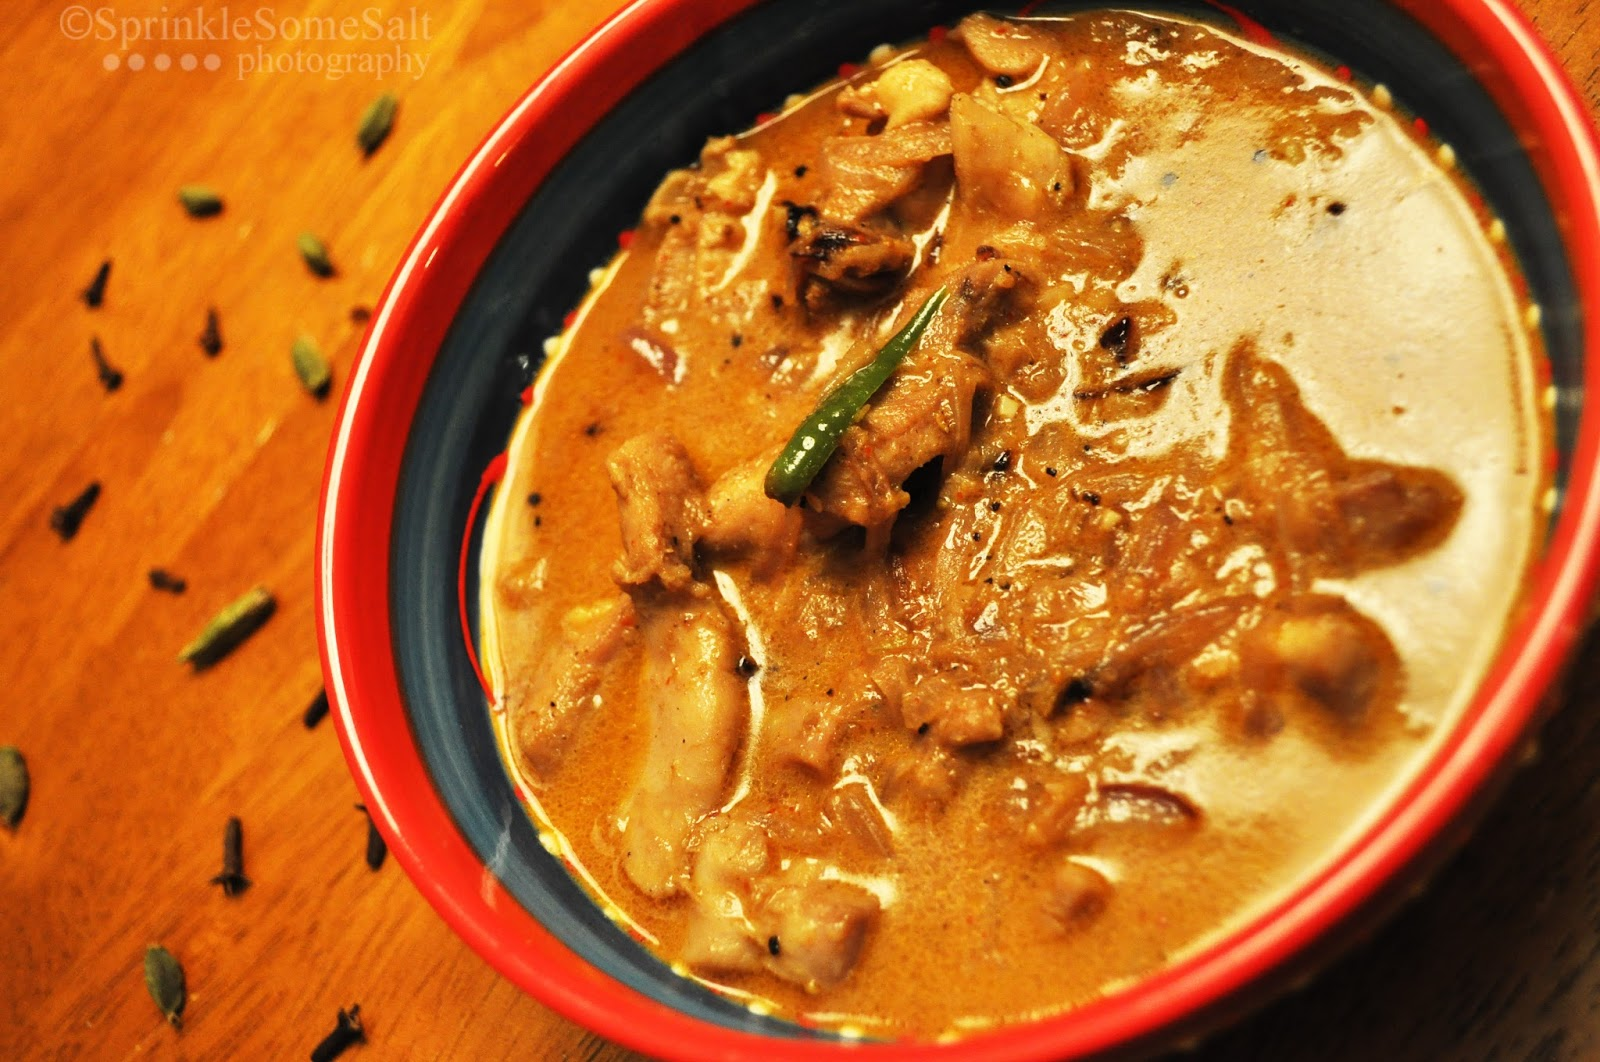 Sprinkle Some Salt!Kerala Chicken curry with coconut milk